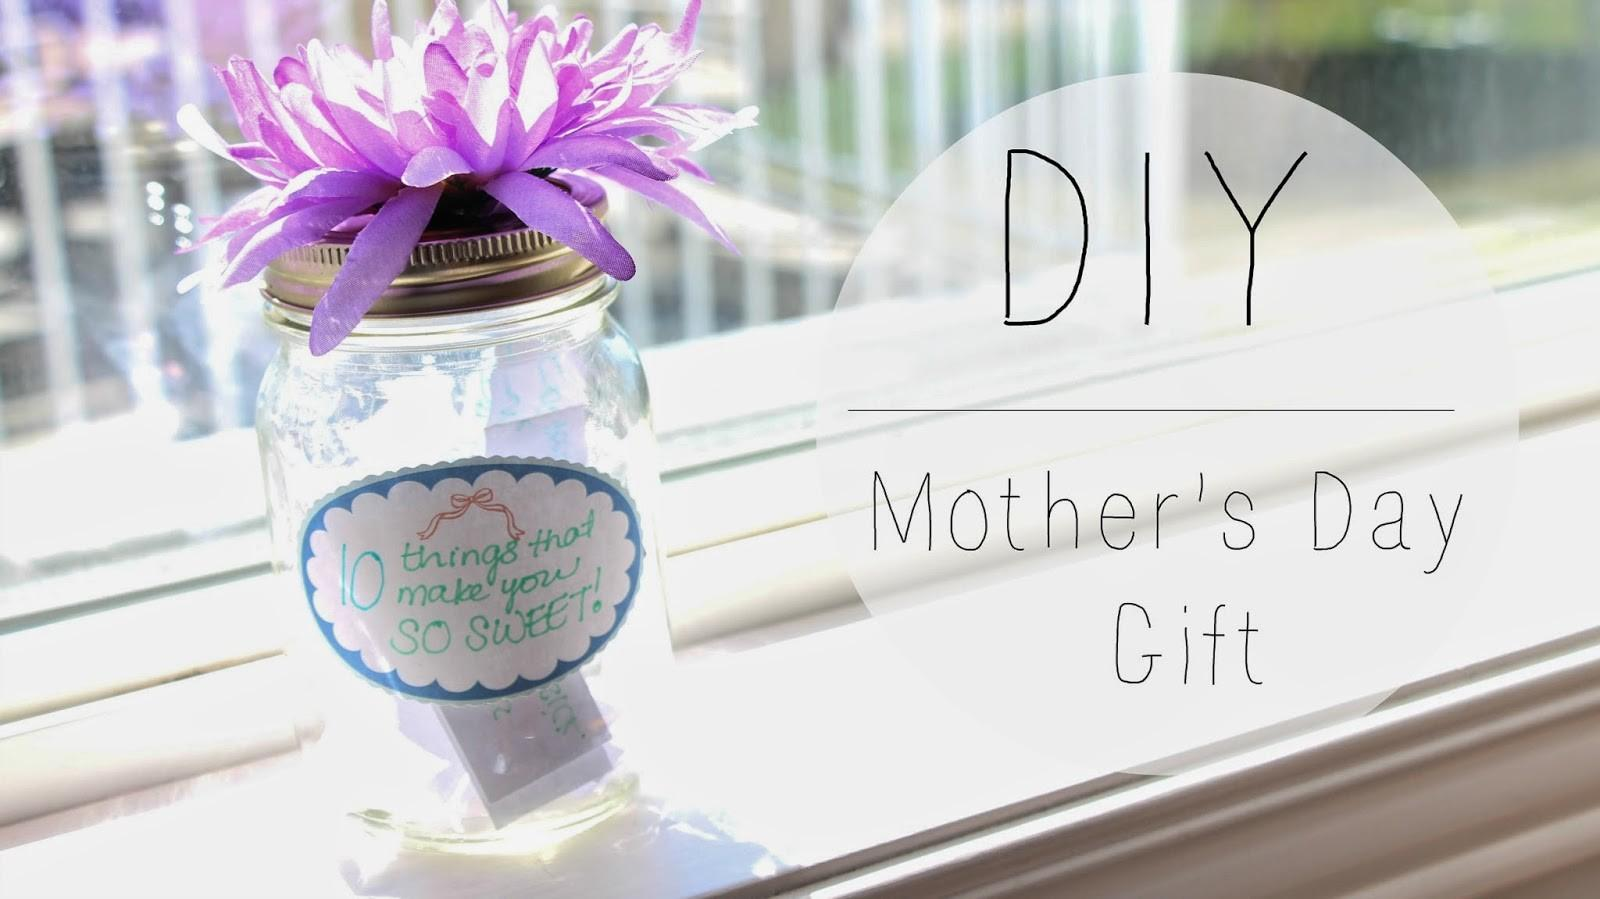 Jennsphilosophy Diy Mother Day Gift Things